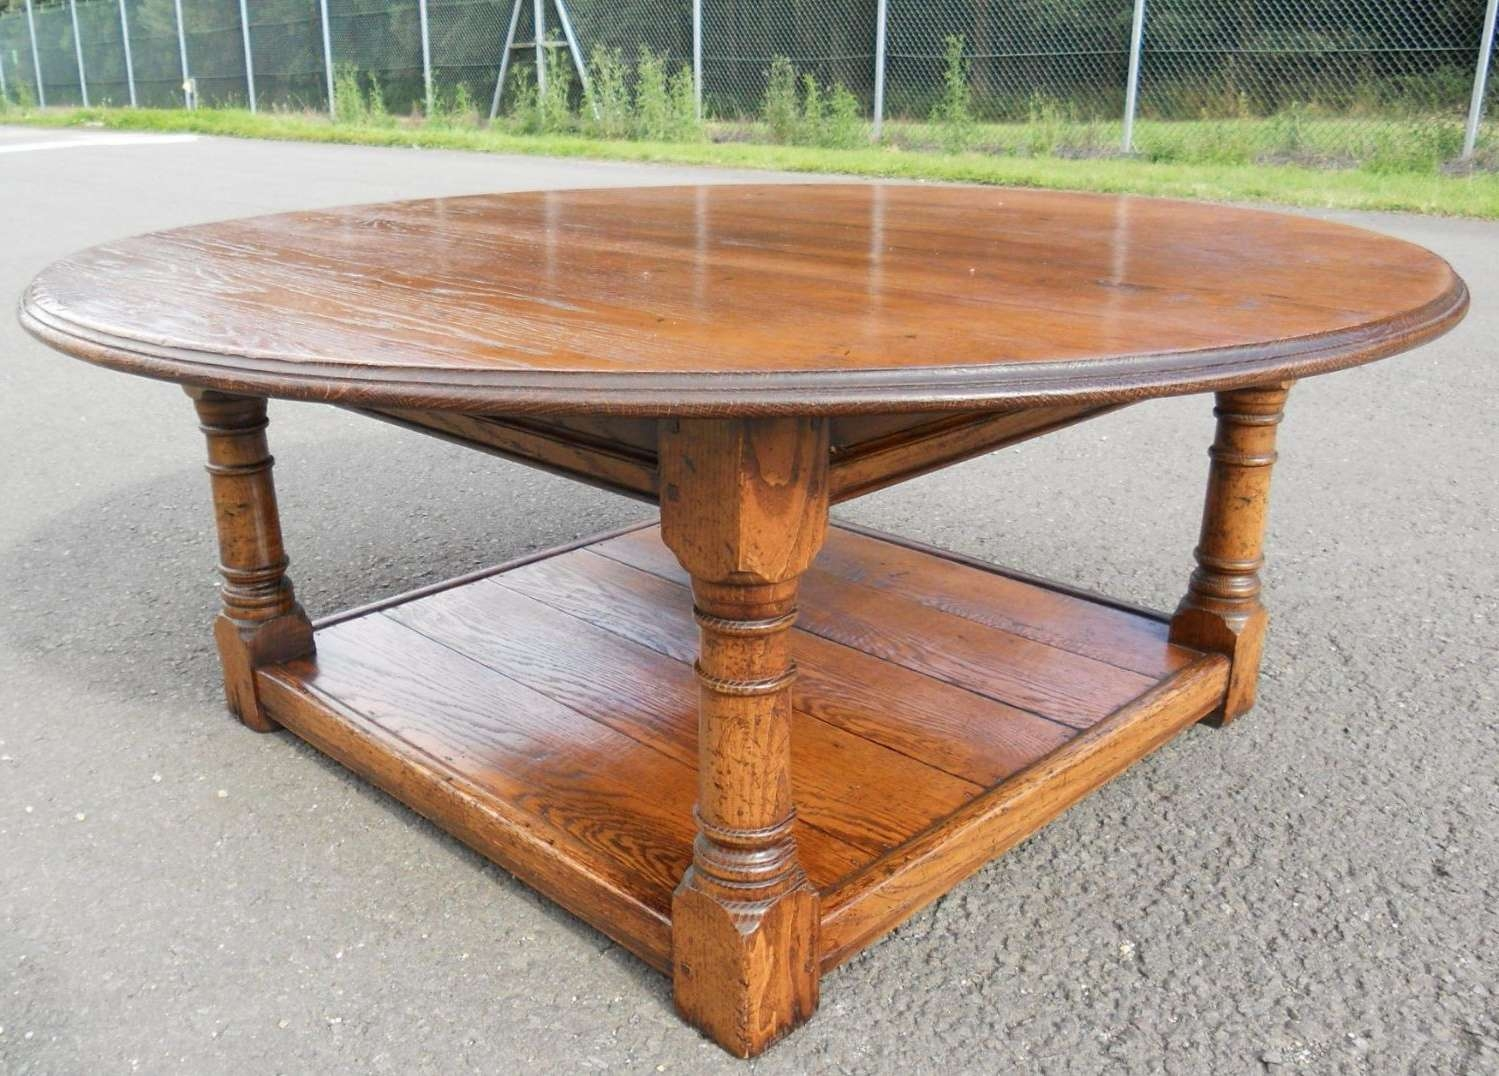 Large Round Oak Coffee Table – Sold Pertaining To Well Known Round Oak Coffee Tables (View 9 of 20)